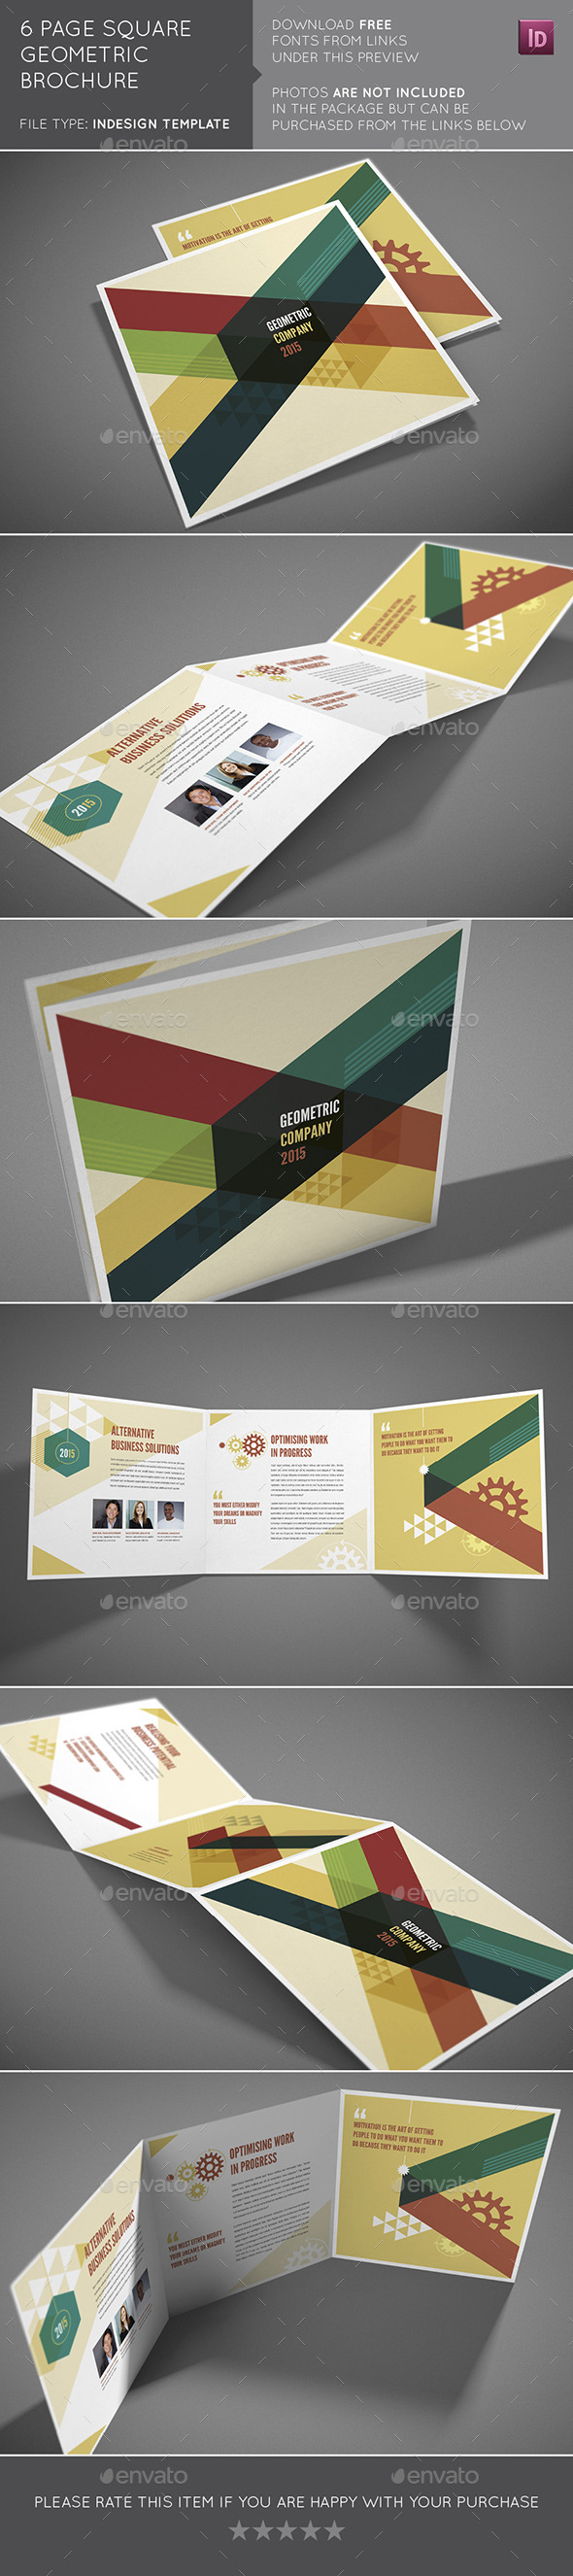 Print template graphicriver 6 page square geometric for 6 page brochure template